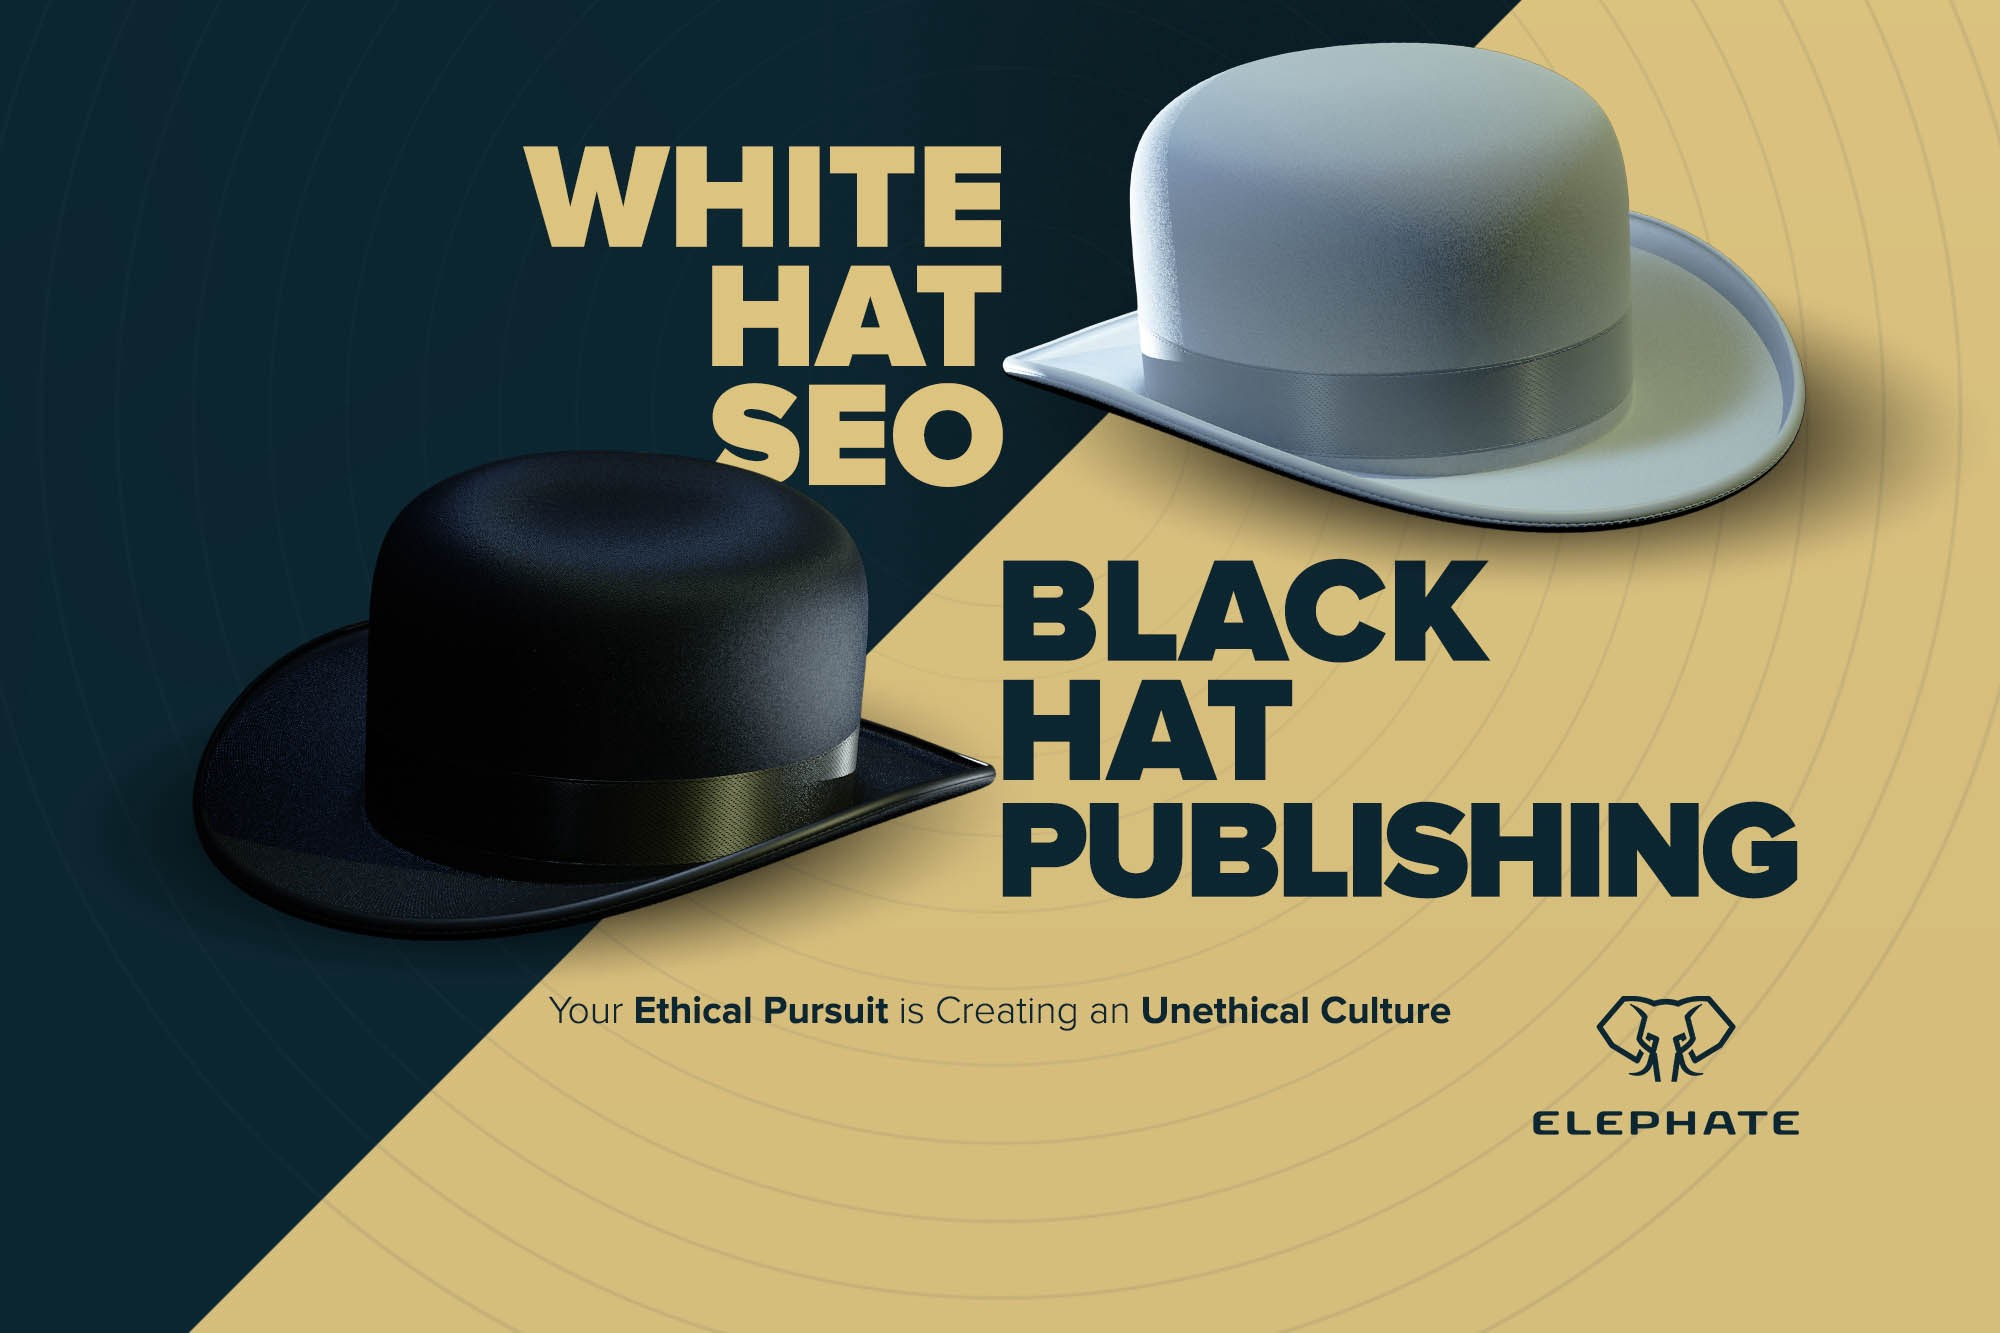 White Hat SEO, Black Hat Publishing - Elephate - Medium